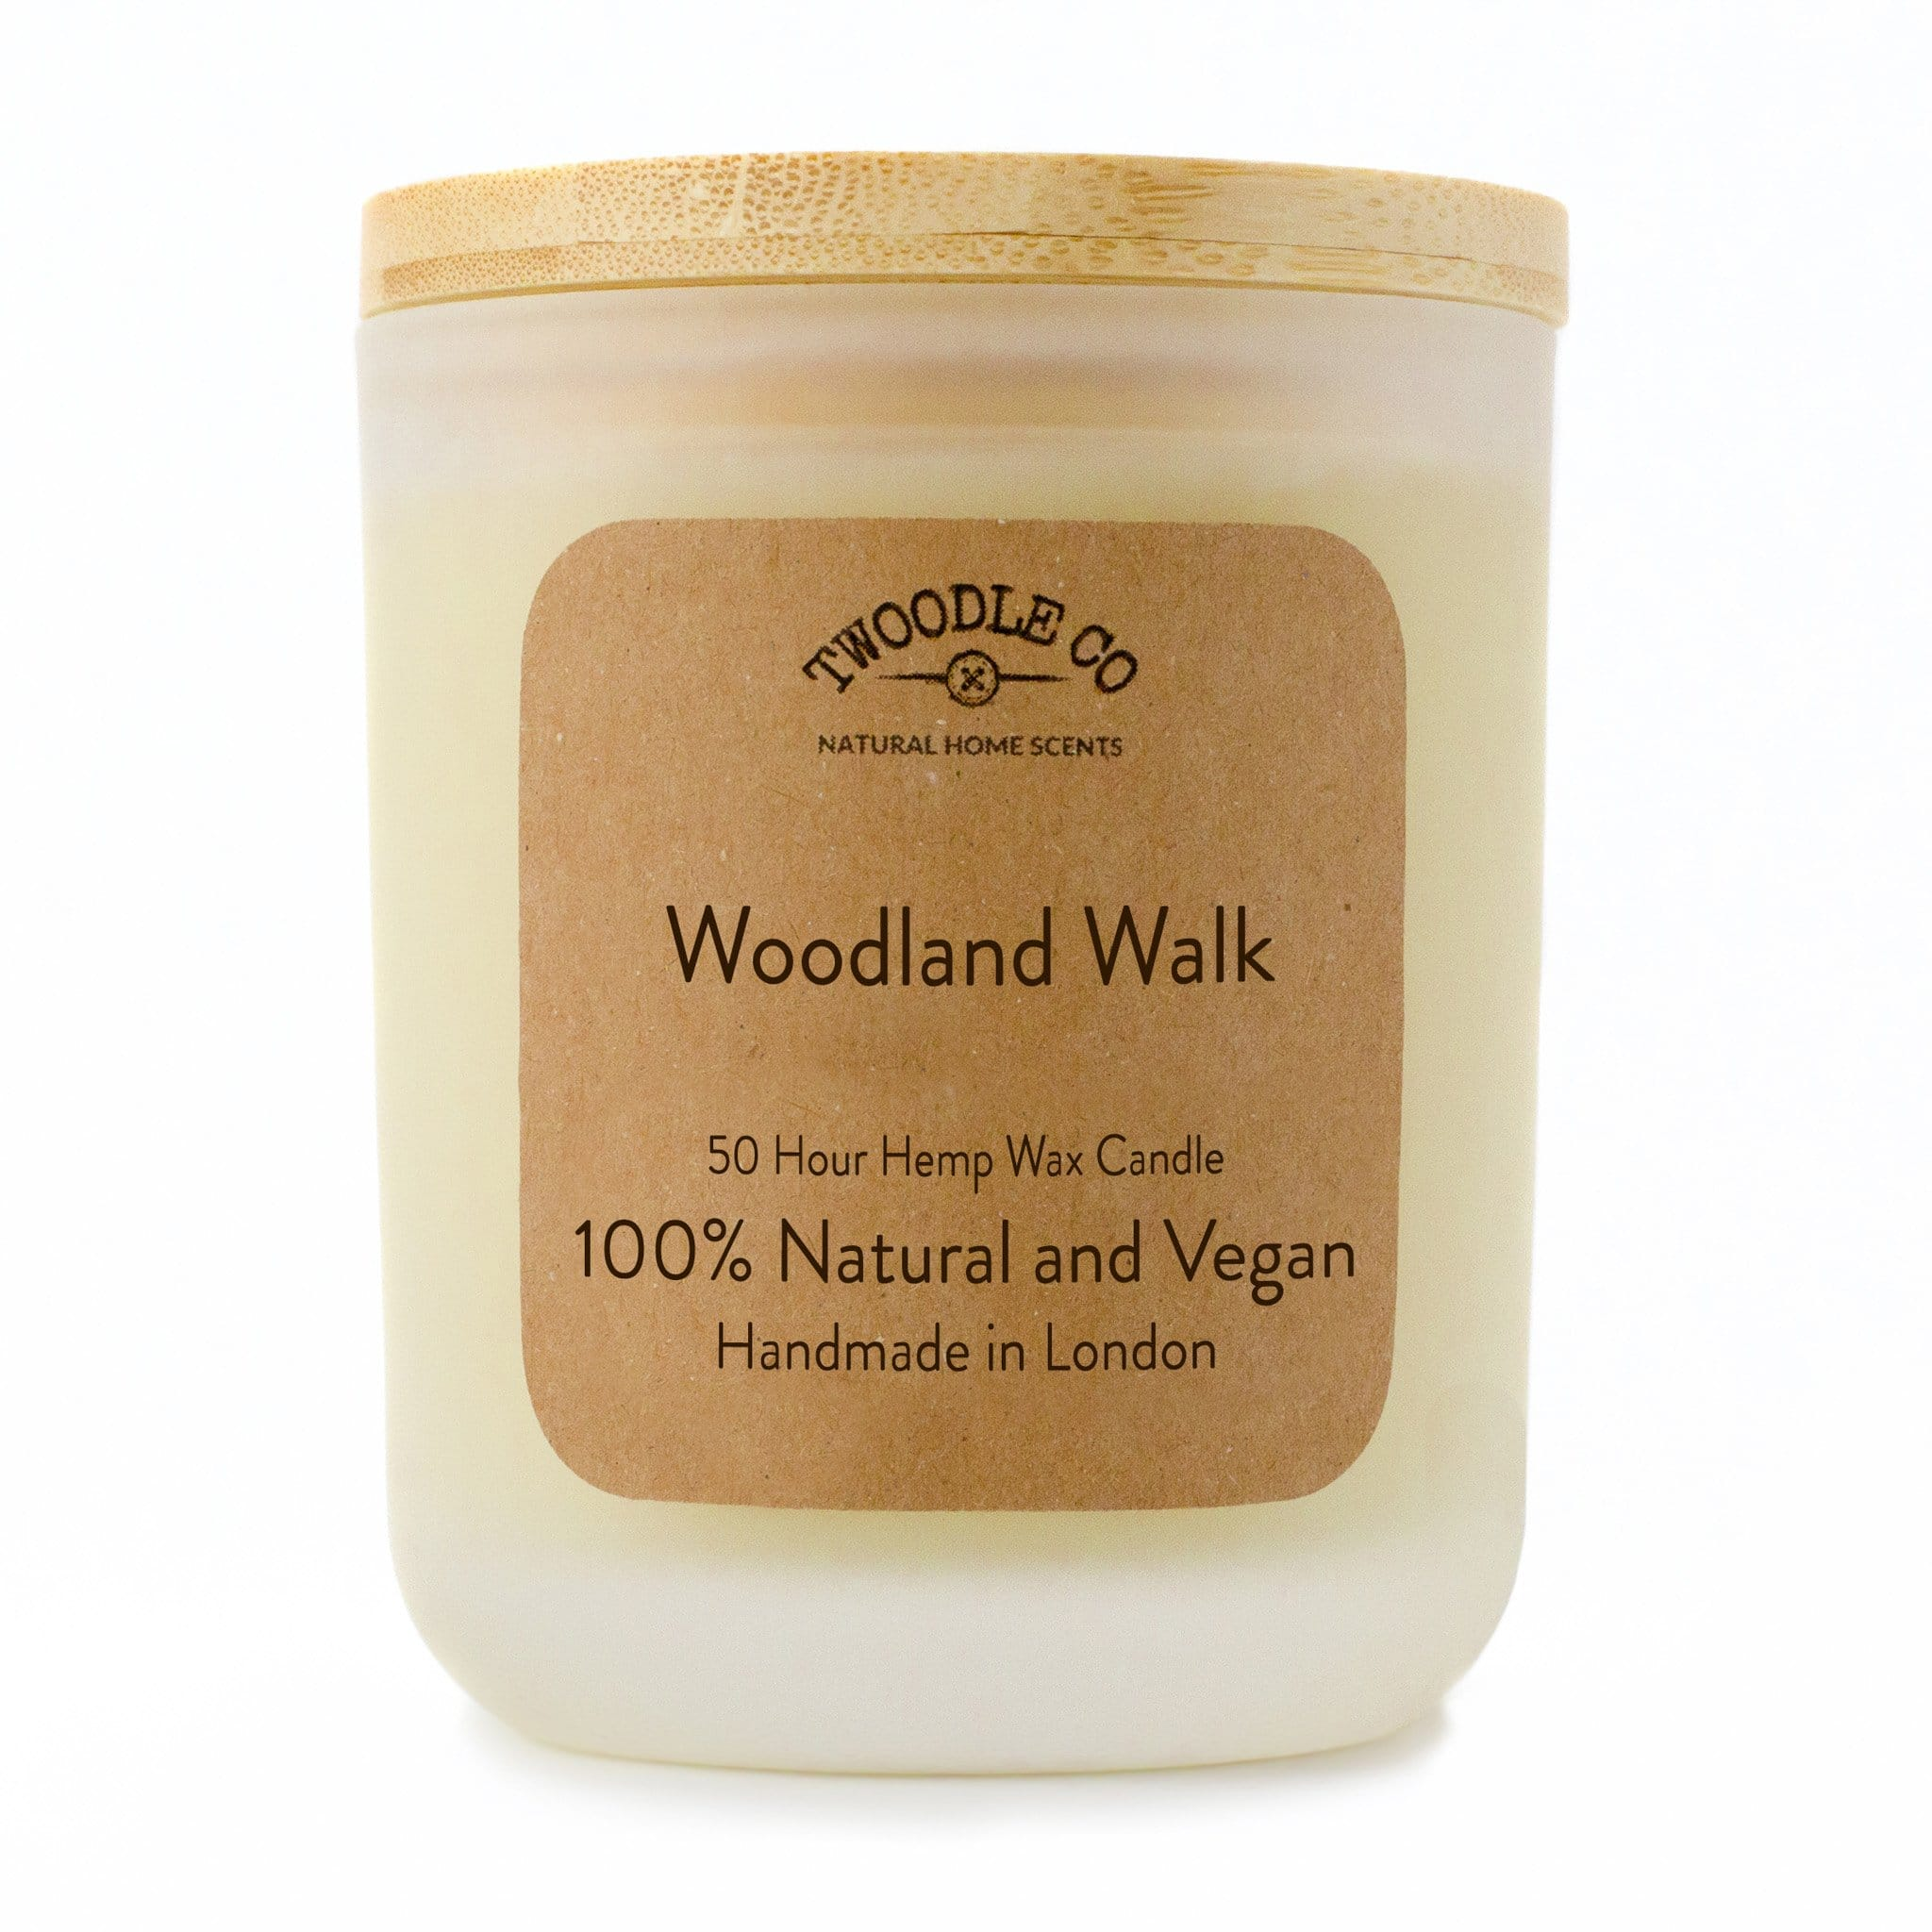 Woodland Walk Medium Scented Candle 50 Hour